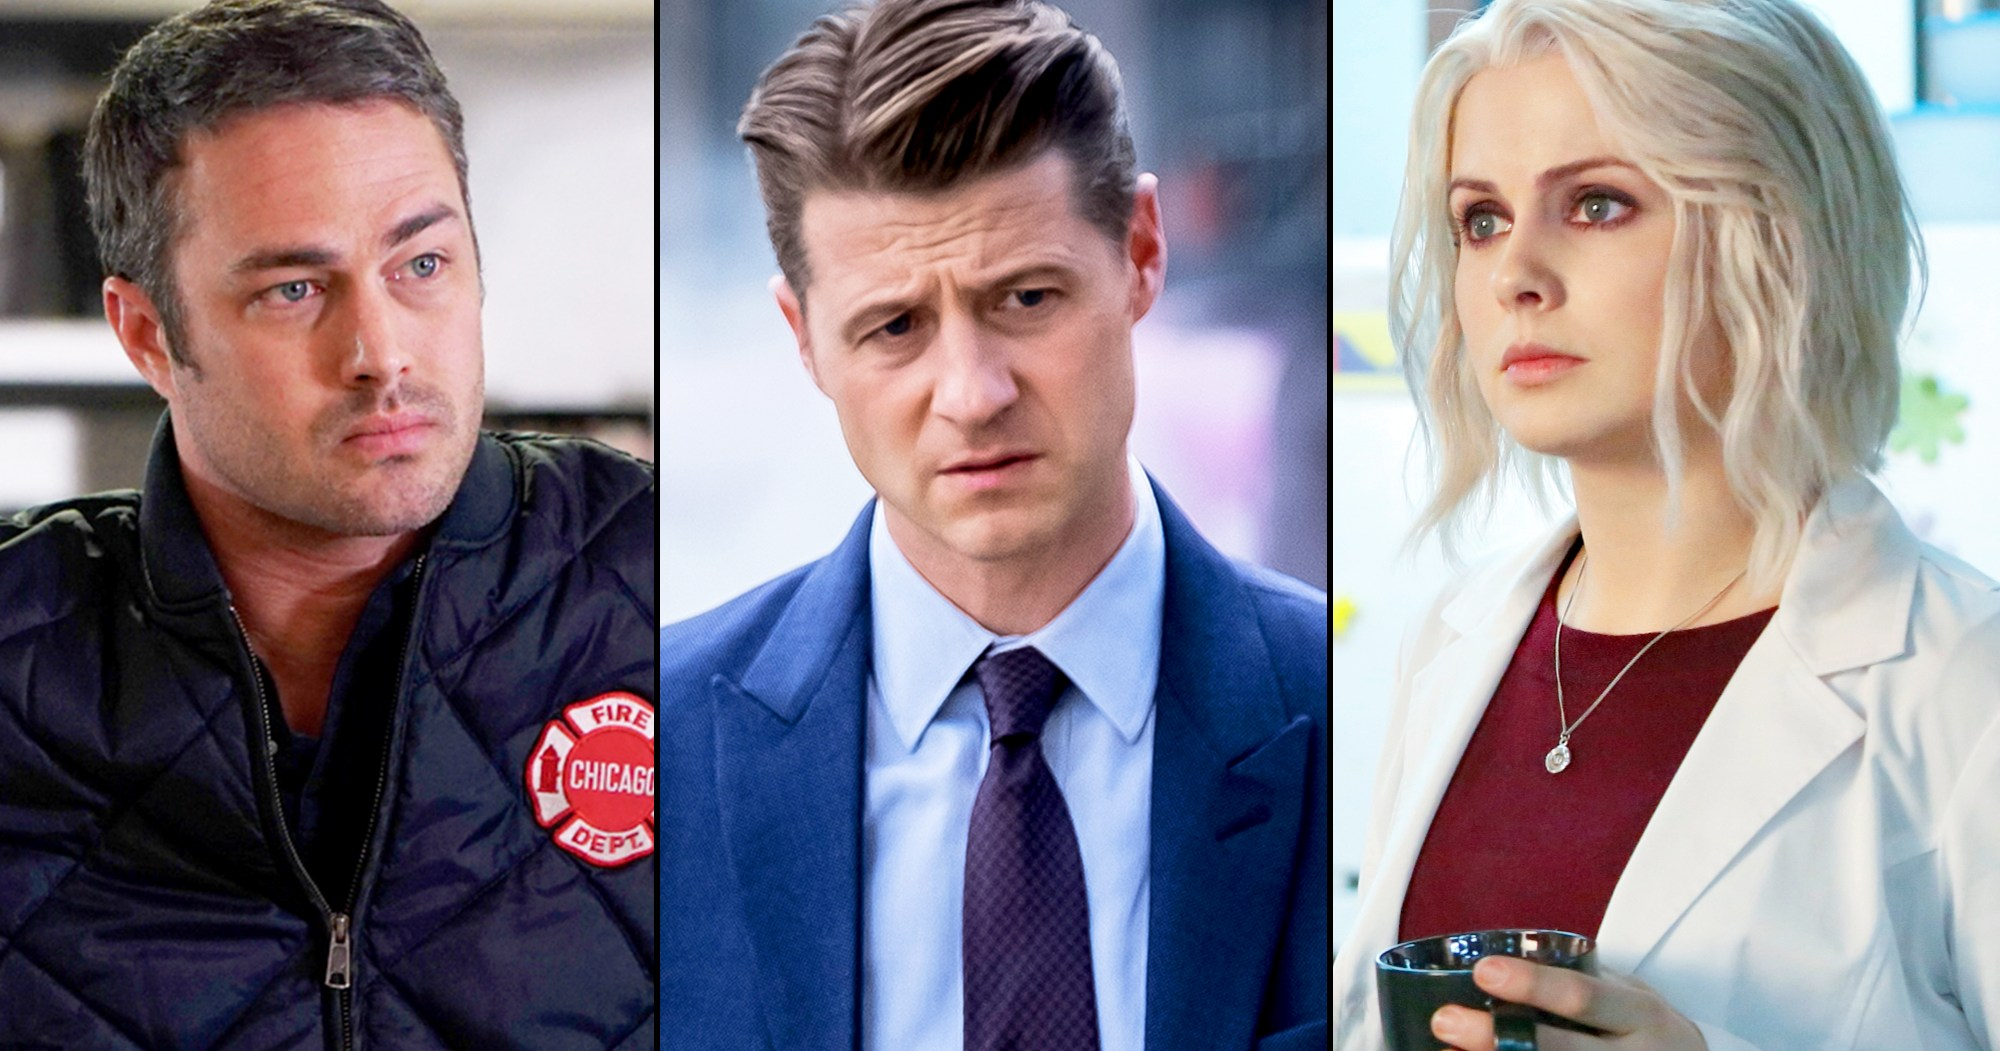 What's Renewed and What's Canceled? Find Out the Status of Your Favorite TV Shows